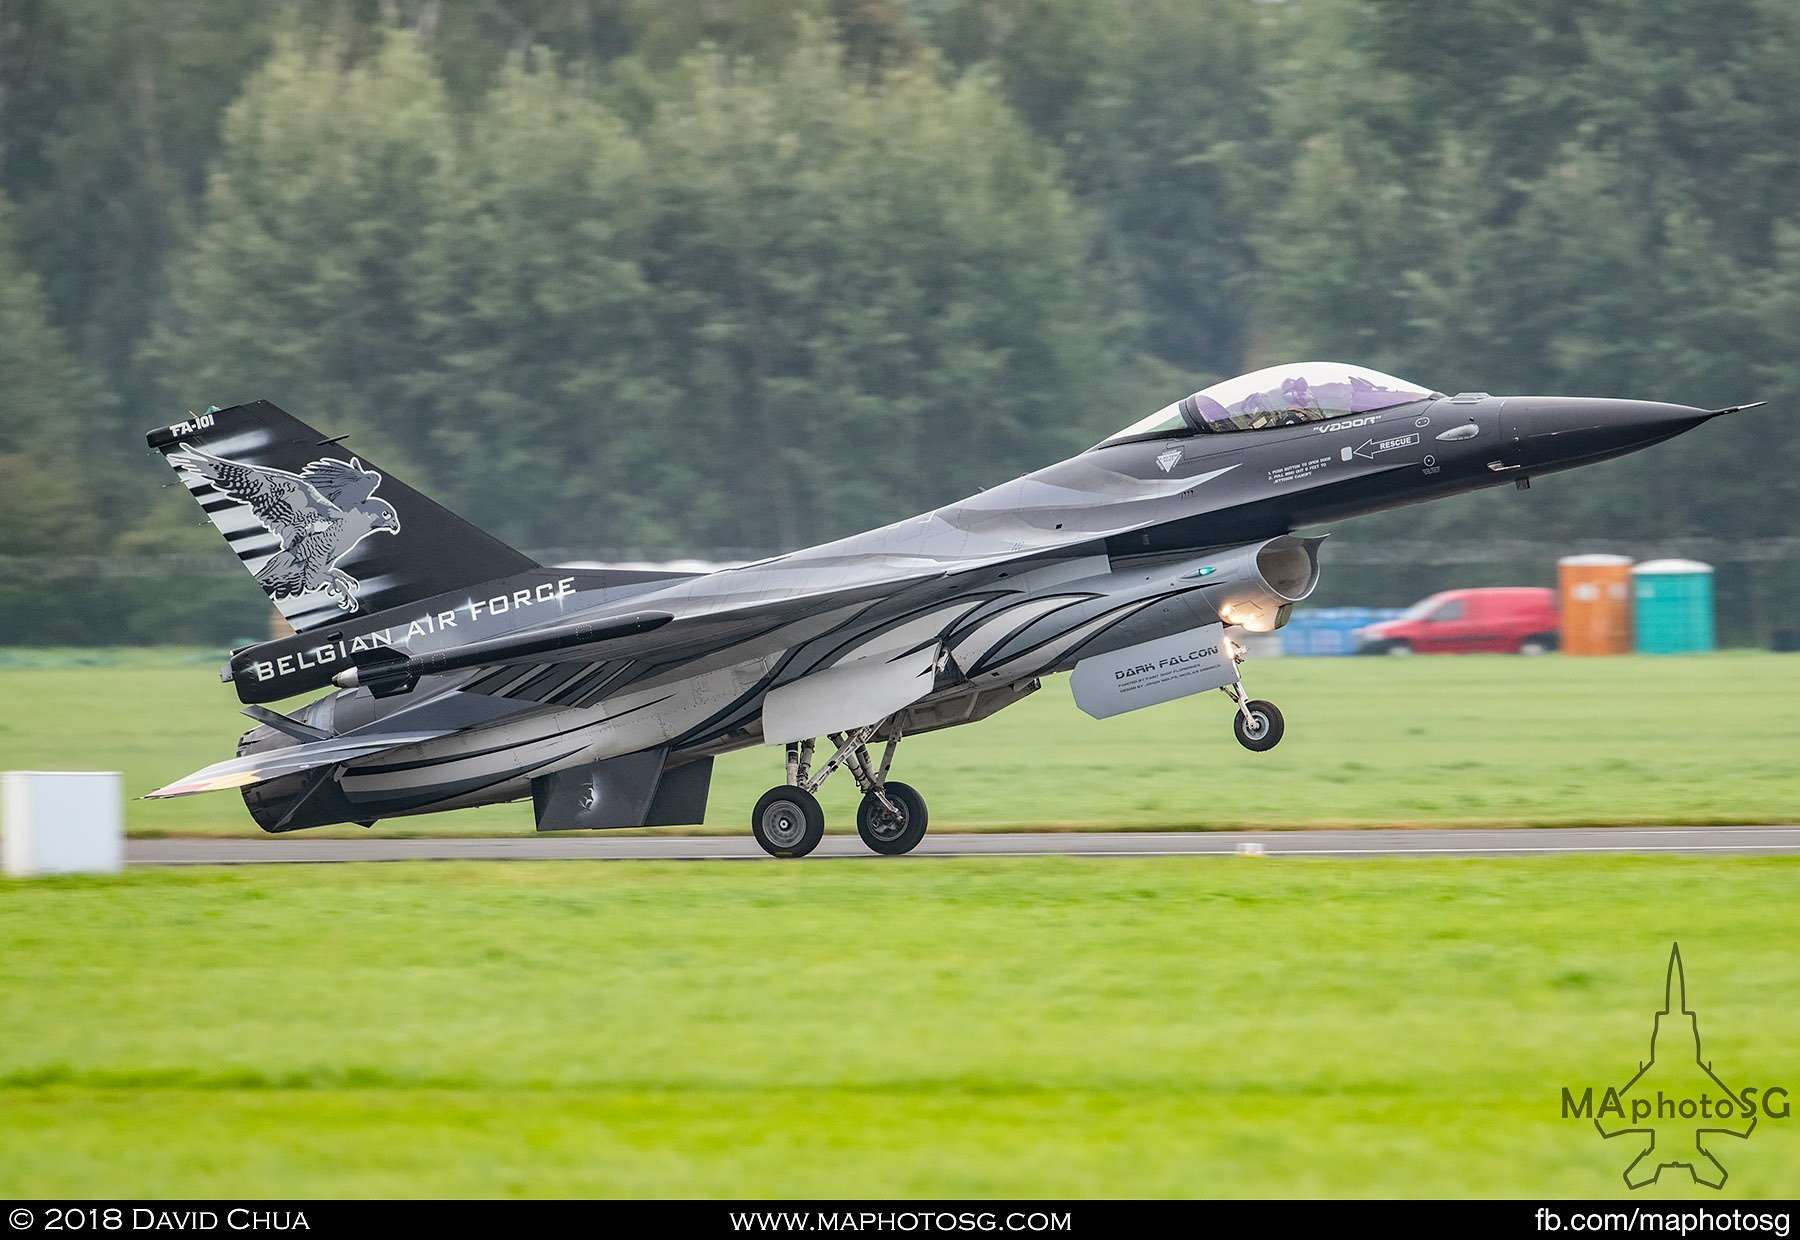 51. Dark Falcon lands after completing his aerial display